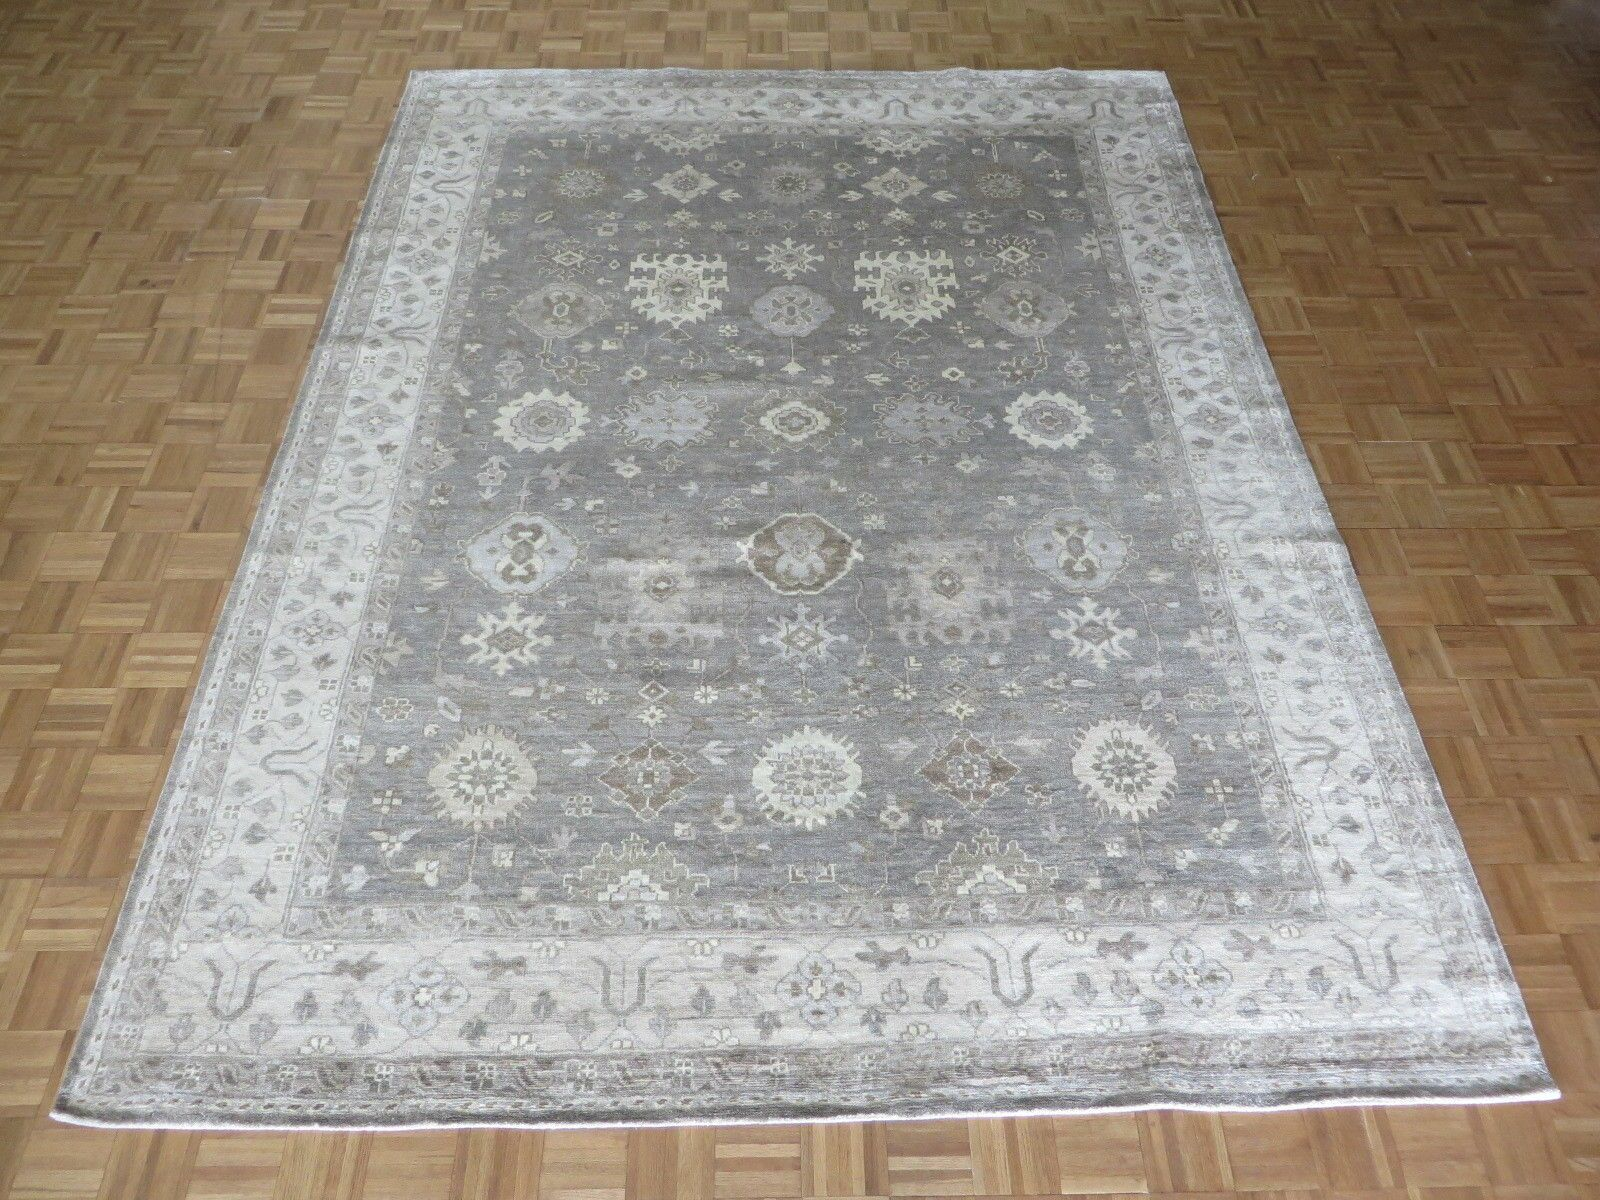 One-of-a-Kind Josephson Oushak Hand-Knotted Silver/Gray Area Rug Rug Size: Rectangle 9'9 x 13'9